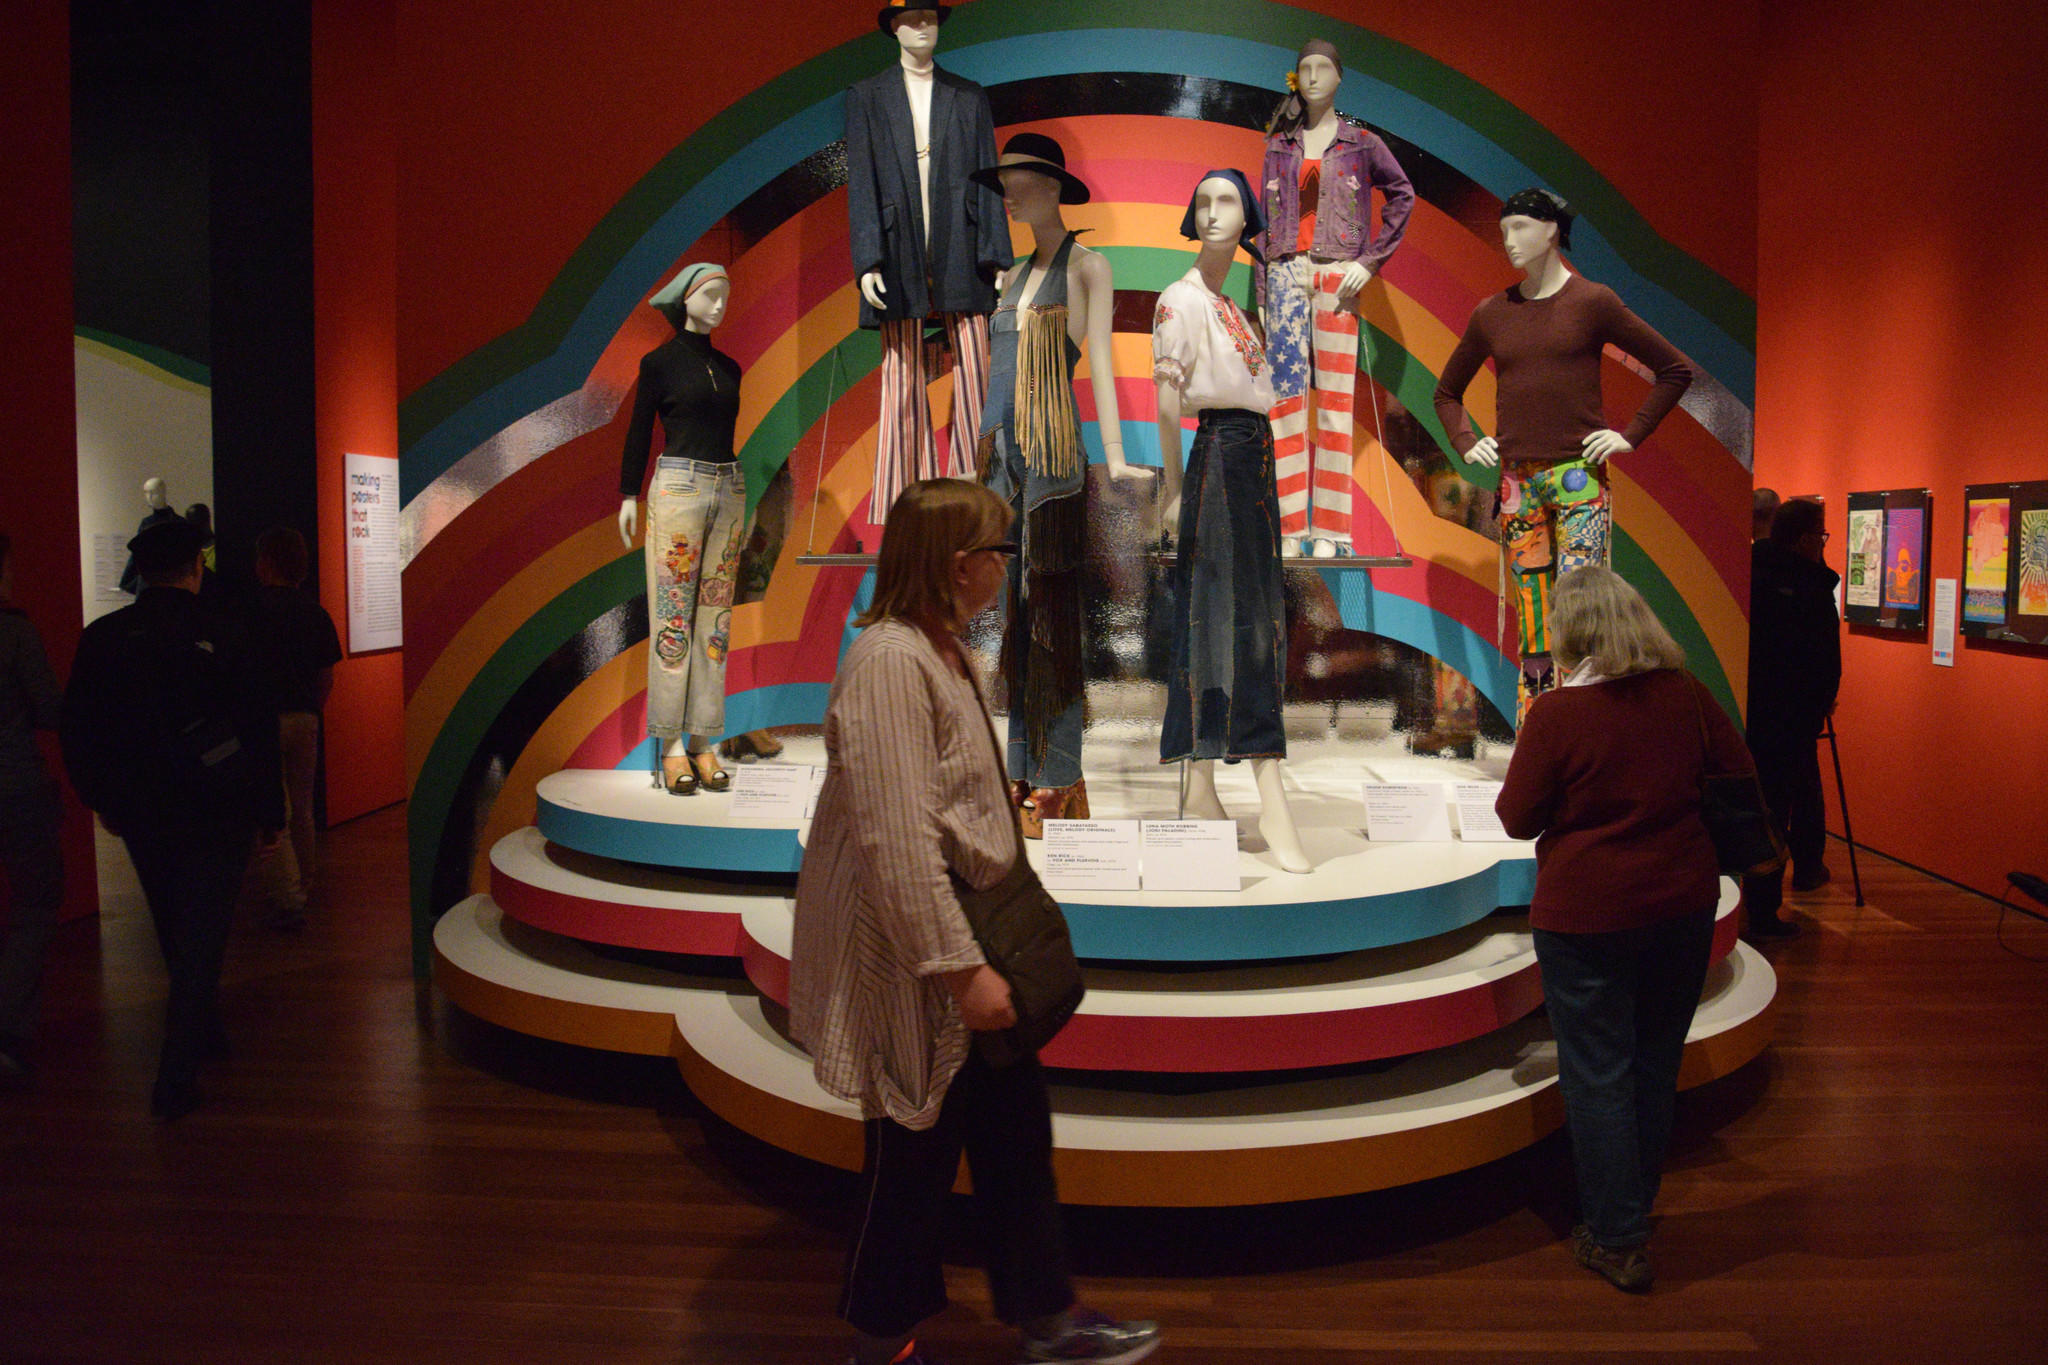 The De Young Museum in San Francisco has an exhibition dedicated to the 50th anniversary of San Francisco's Summer of Love. The fashion of the '60s is woven throughout the exhibit.